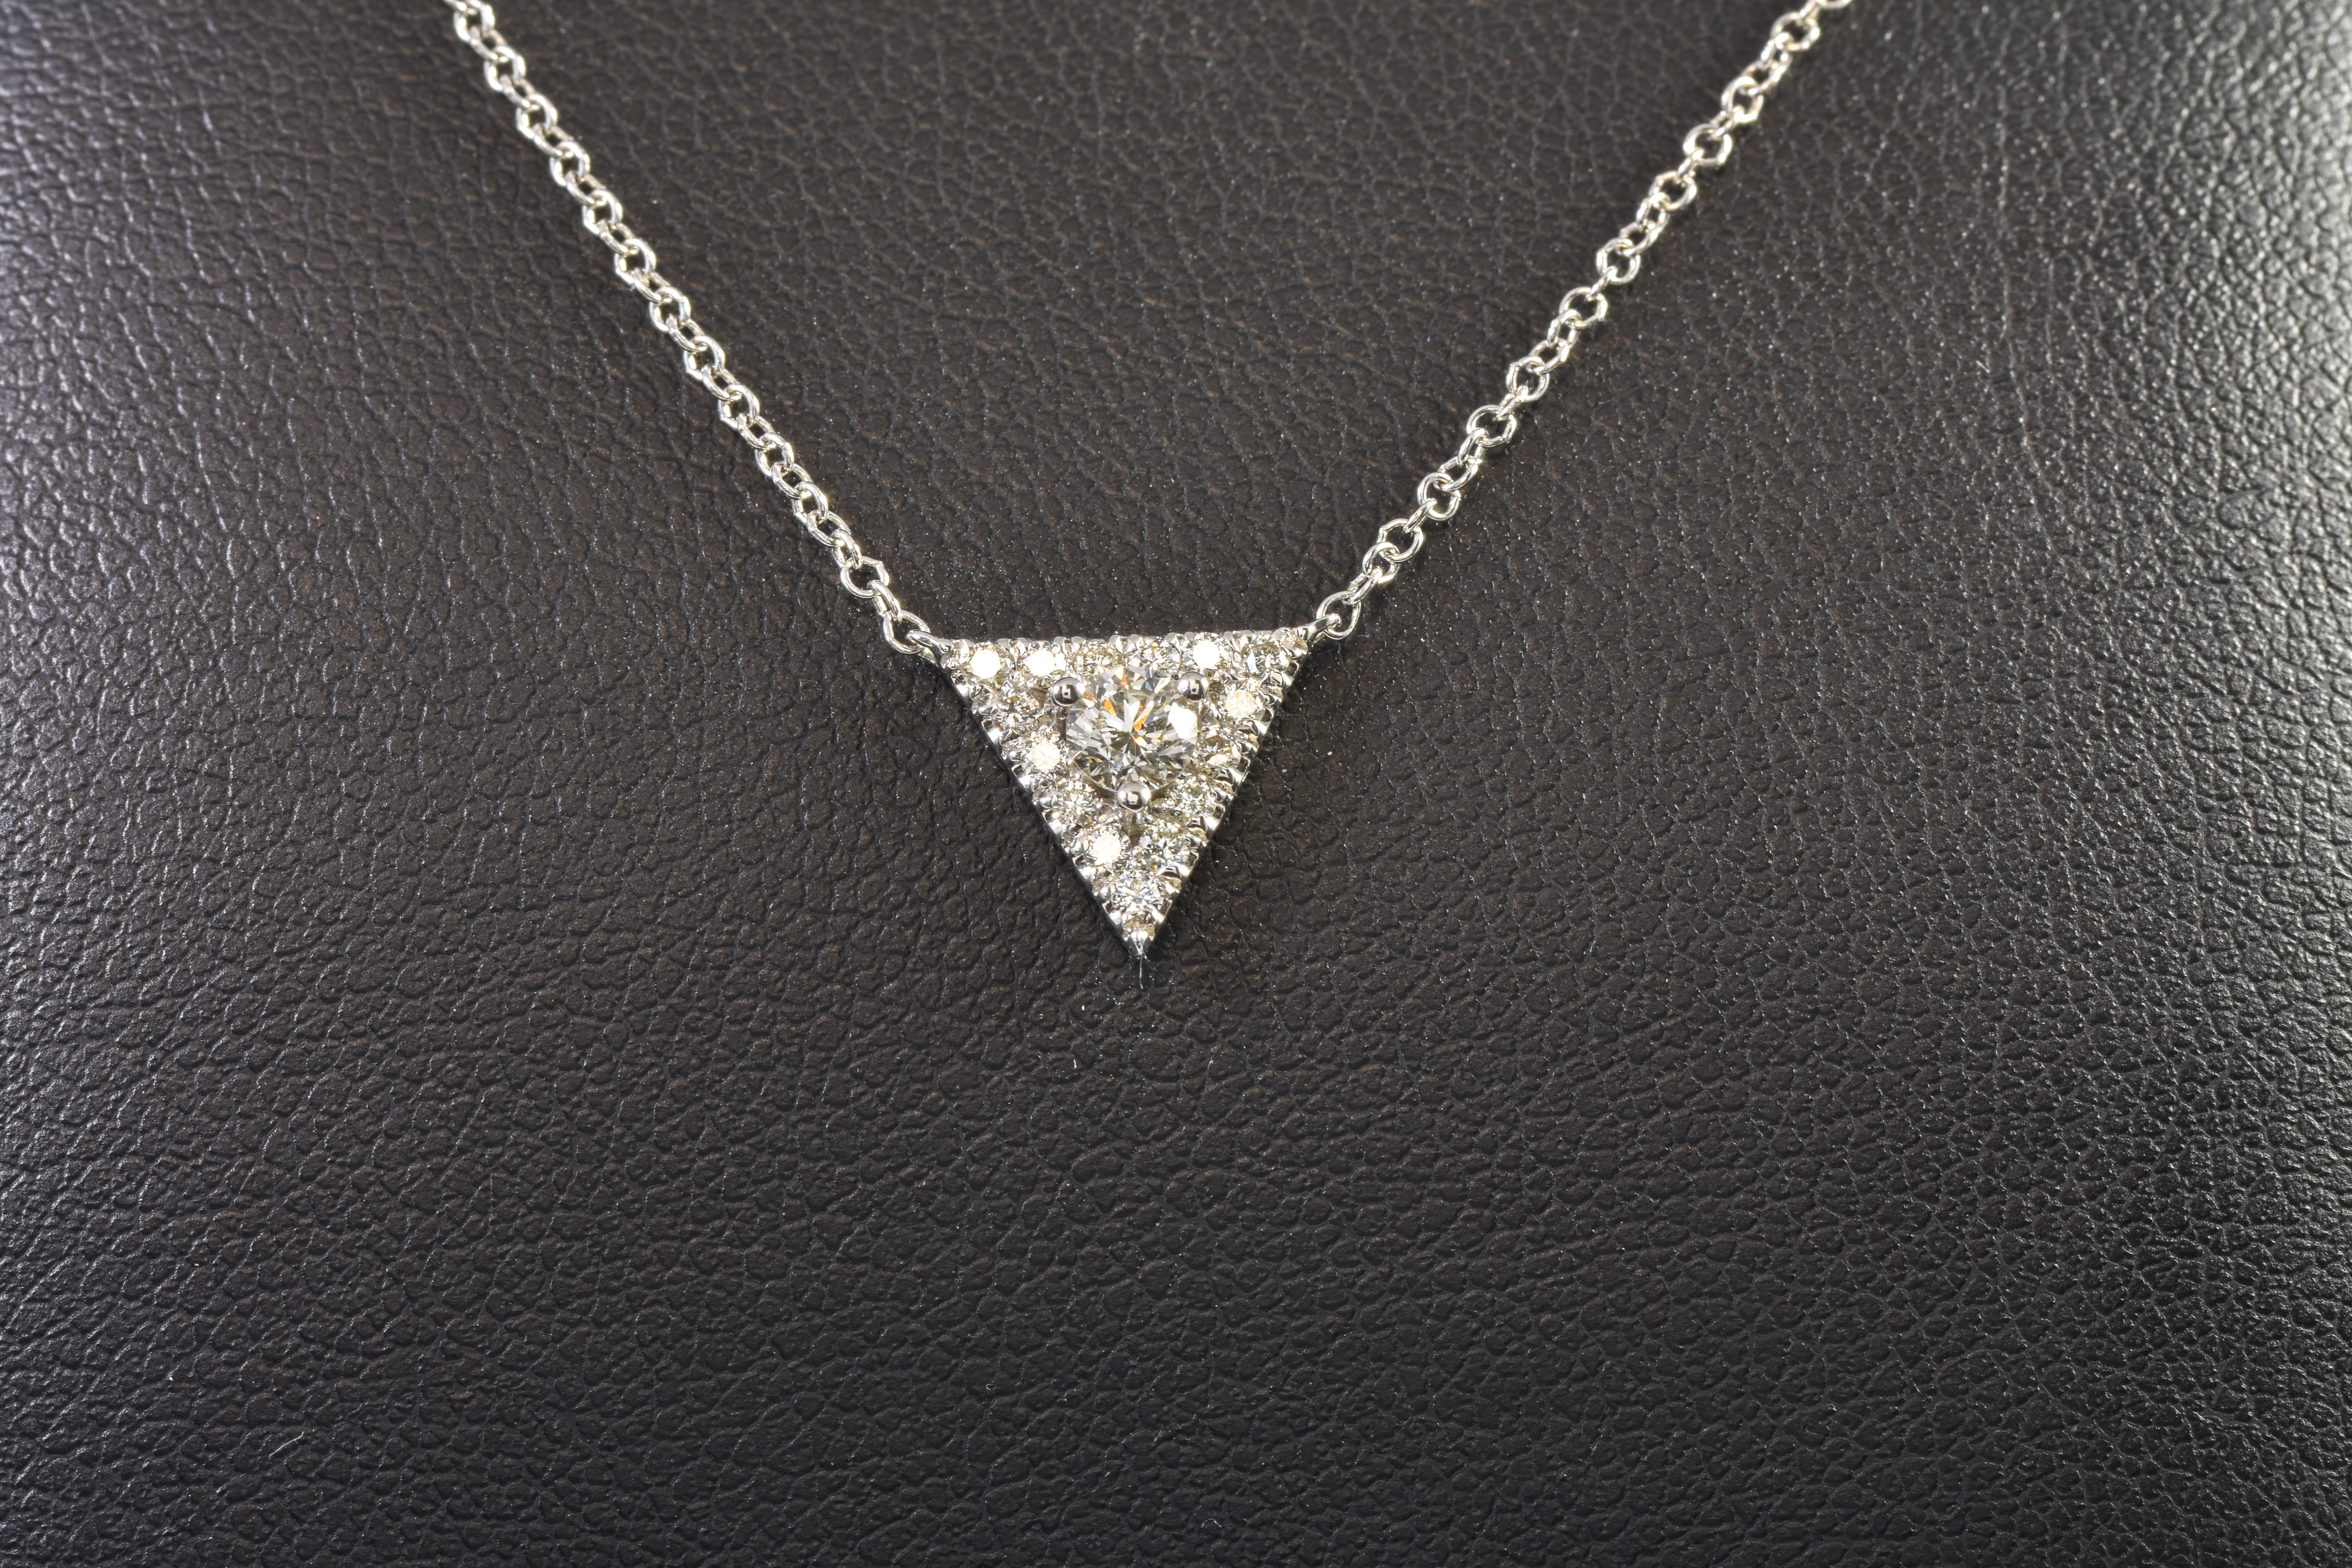 Lady's 14 kt White Gold and Diamond Triangle Necklace